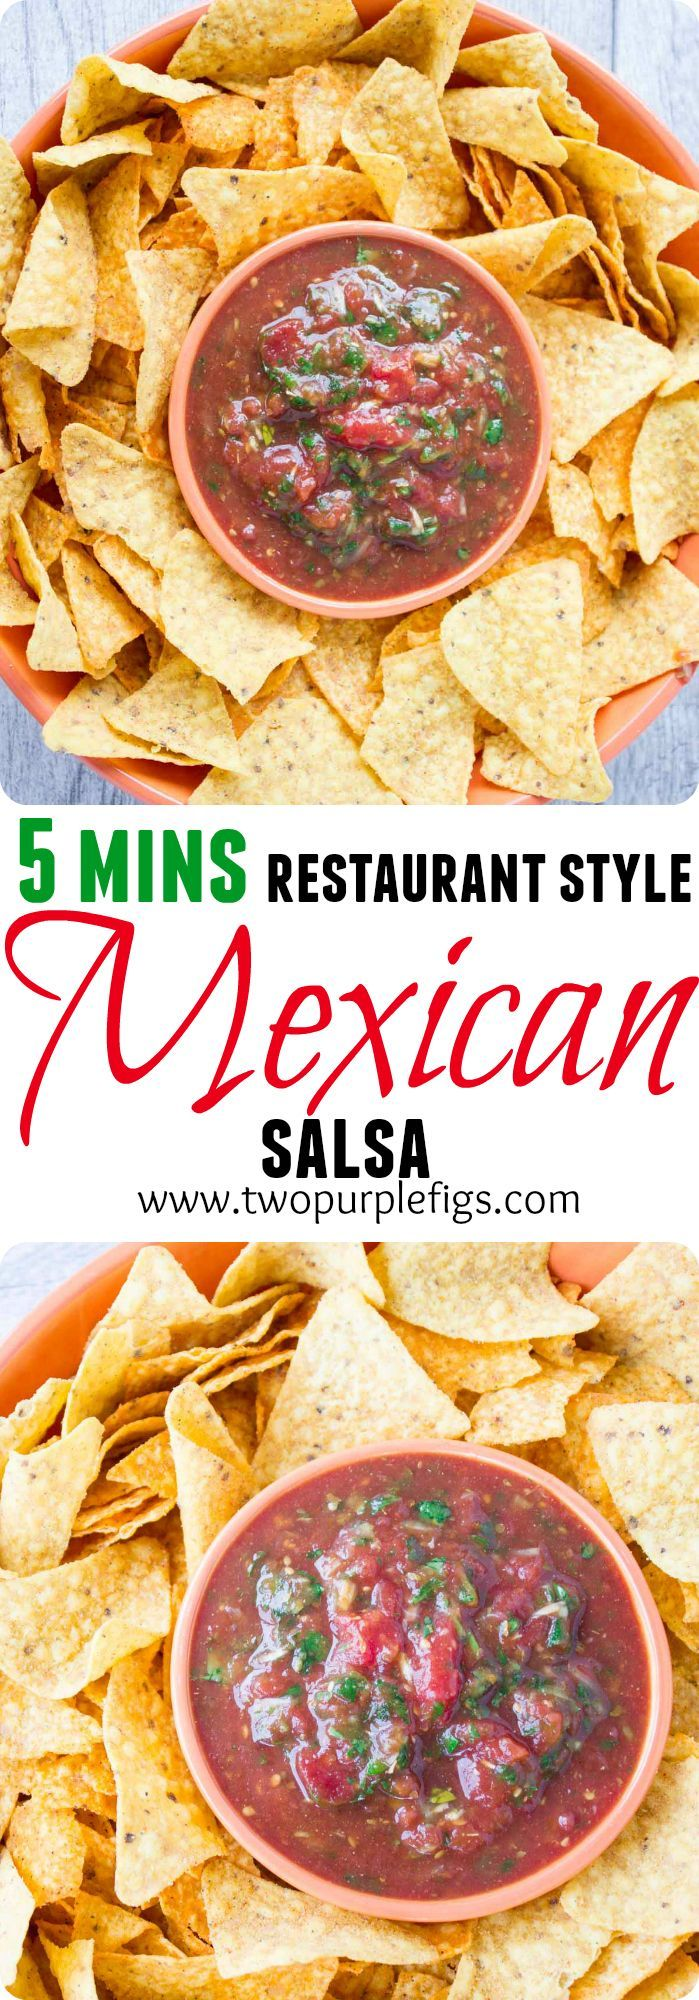 The best Mexican Salsa ever--all made in a food processor and with a secret ingredient that adds unbelievable taste and texture! A last minute snack fix in 5 mins! www.twopurplefigs.com